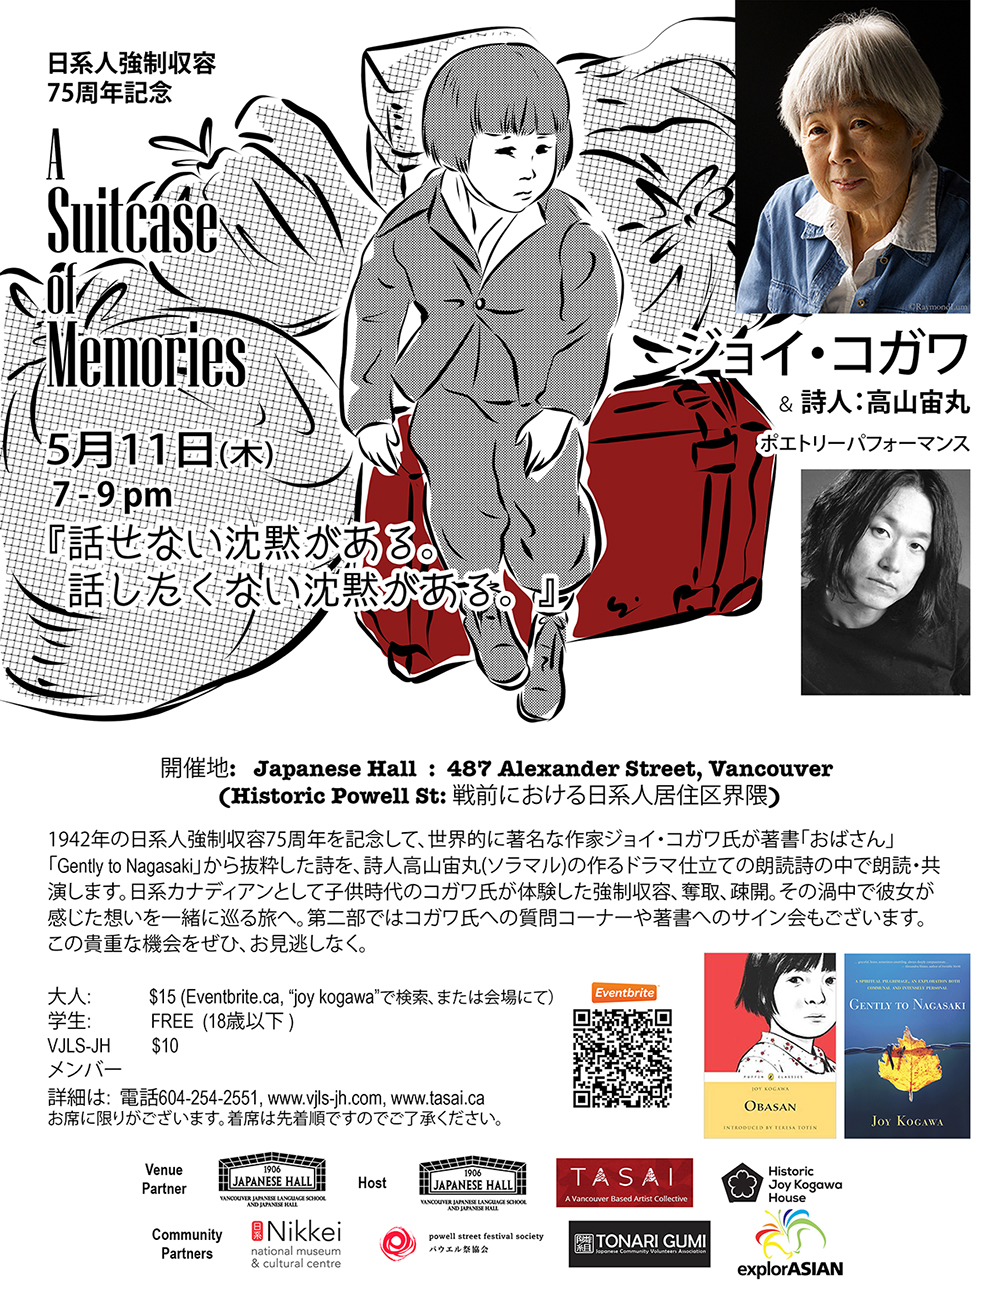 A Suitcase of Memories - poetry event